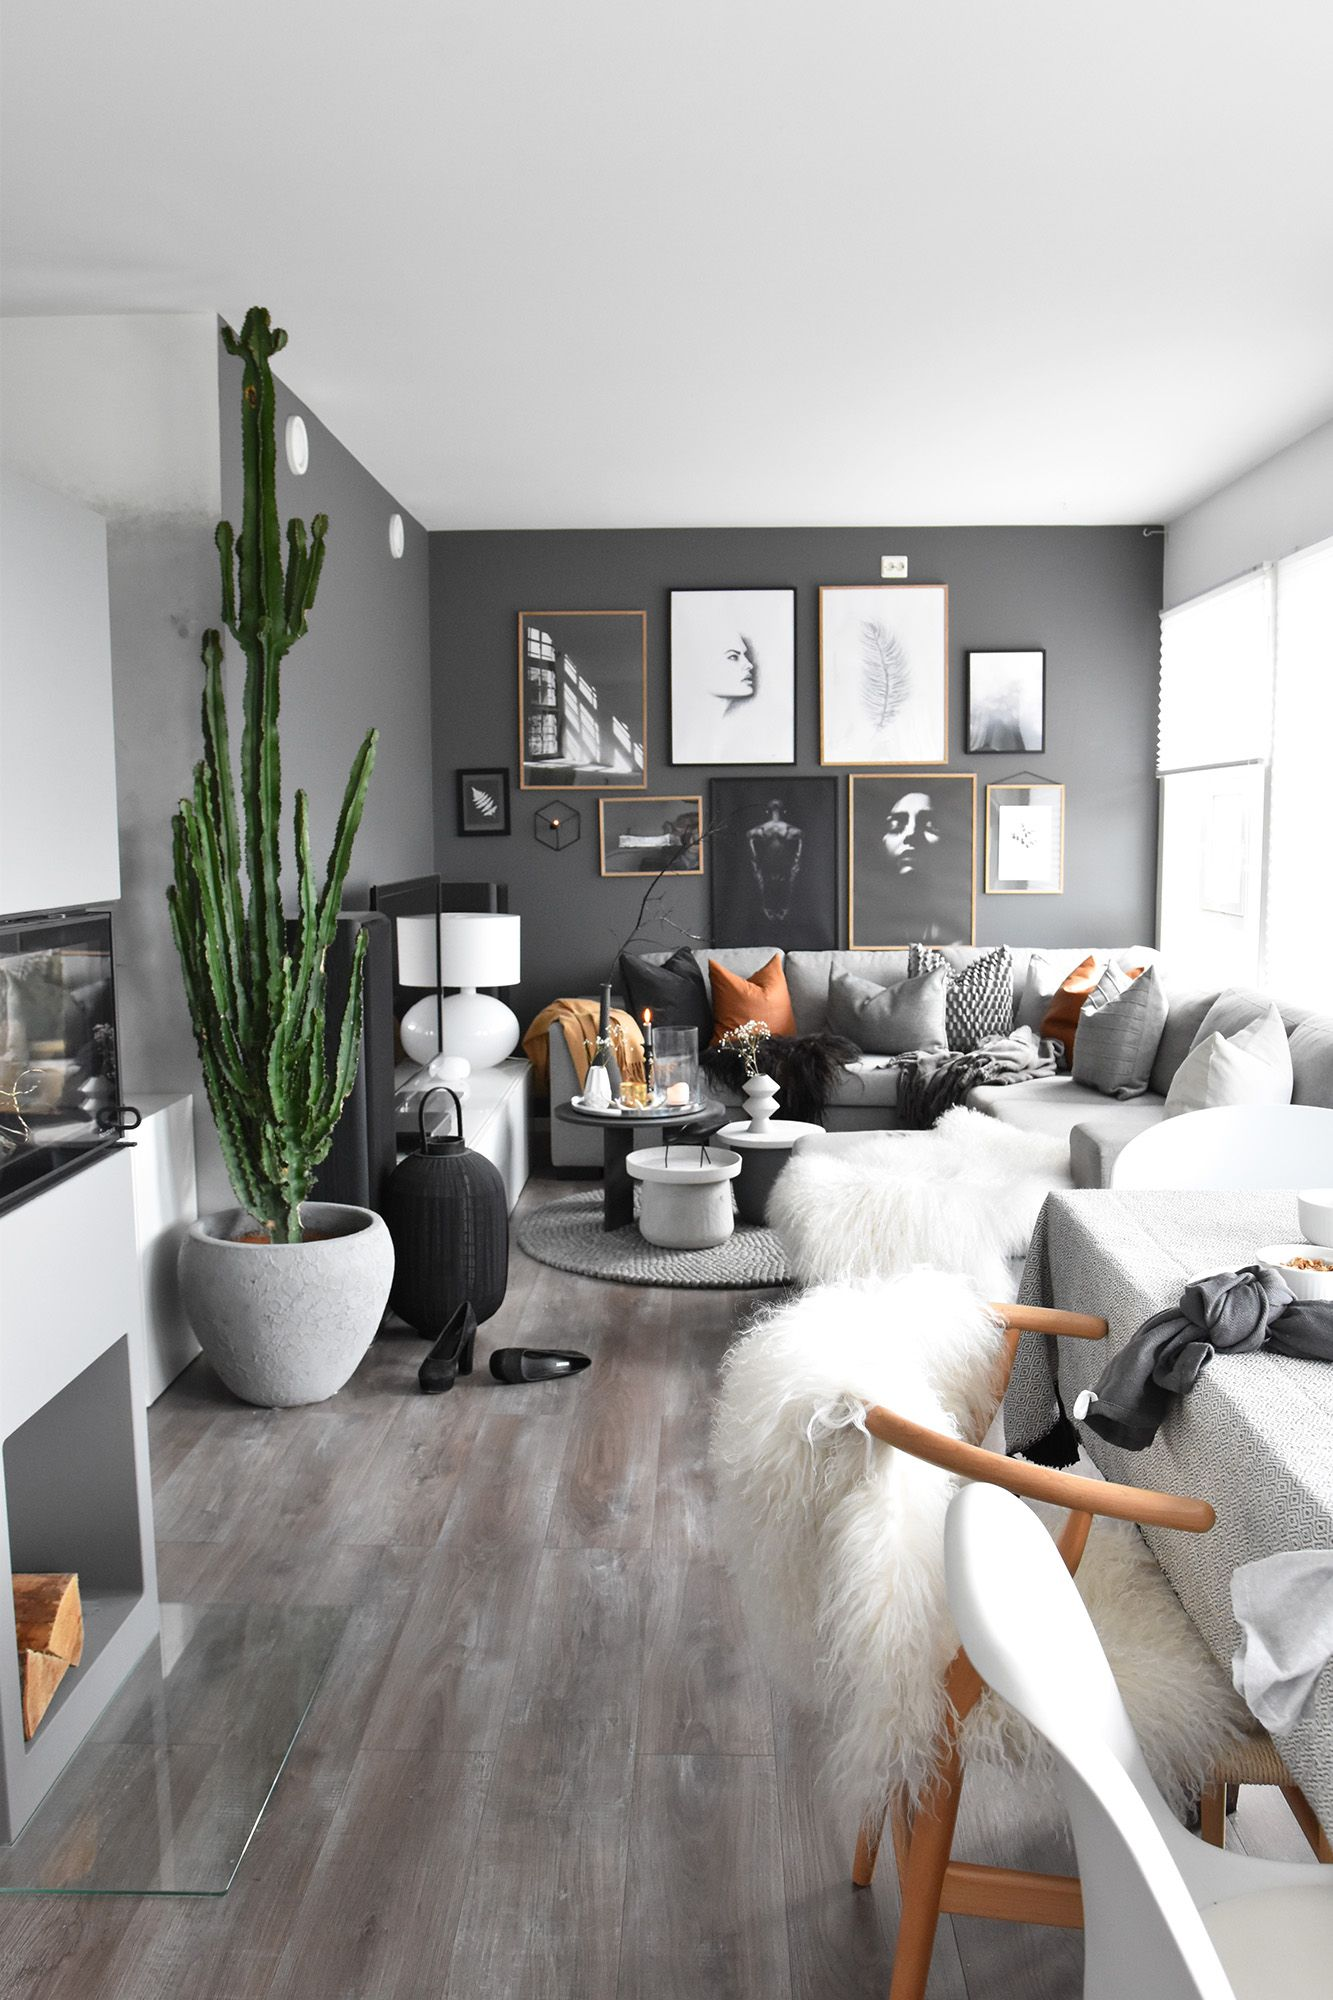 10 fall trends the season s latest ideas living room ideas dark grey black wall living room idea with indoor plants and amazing wall art